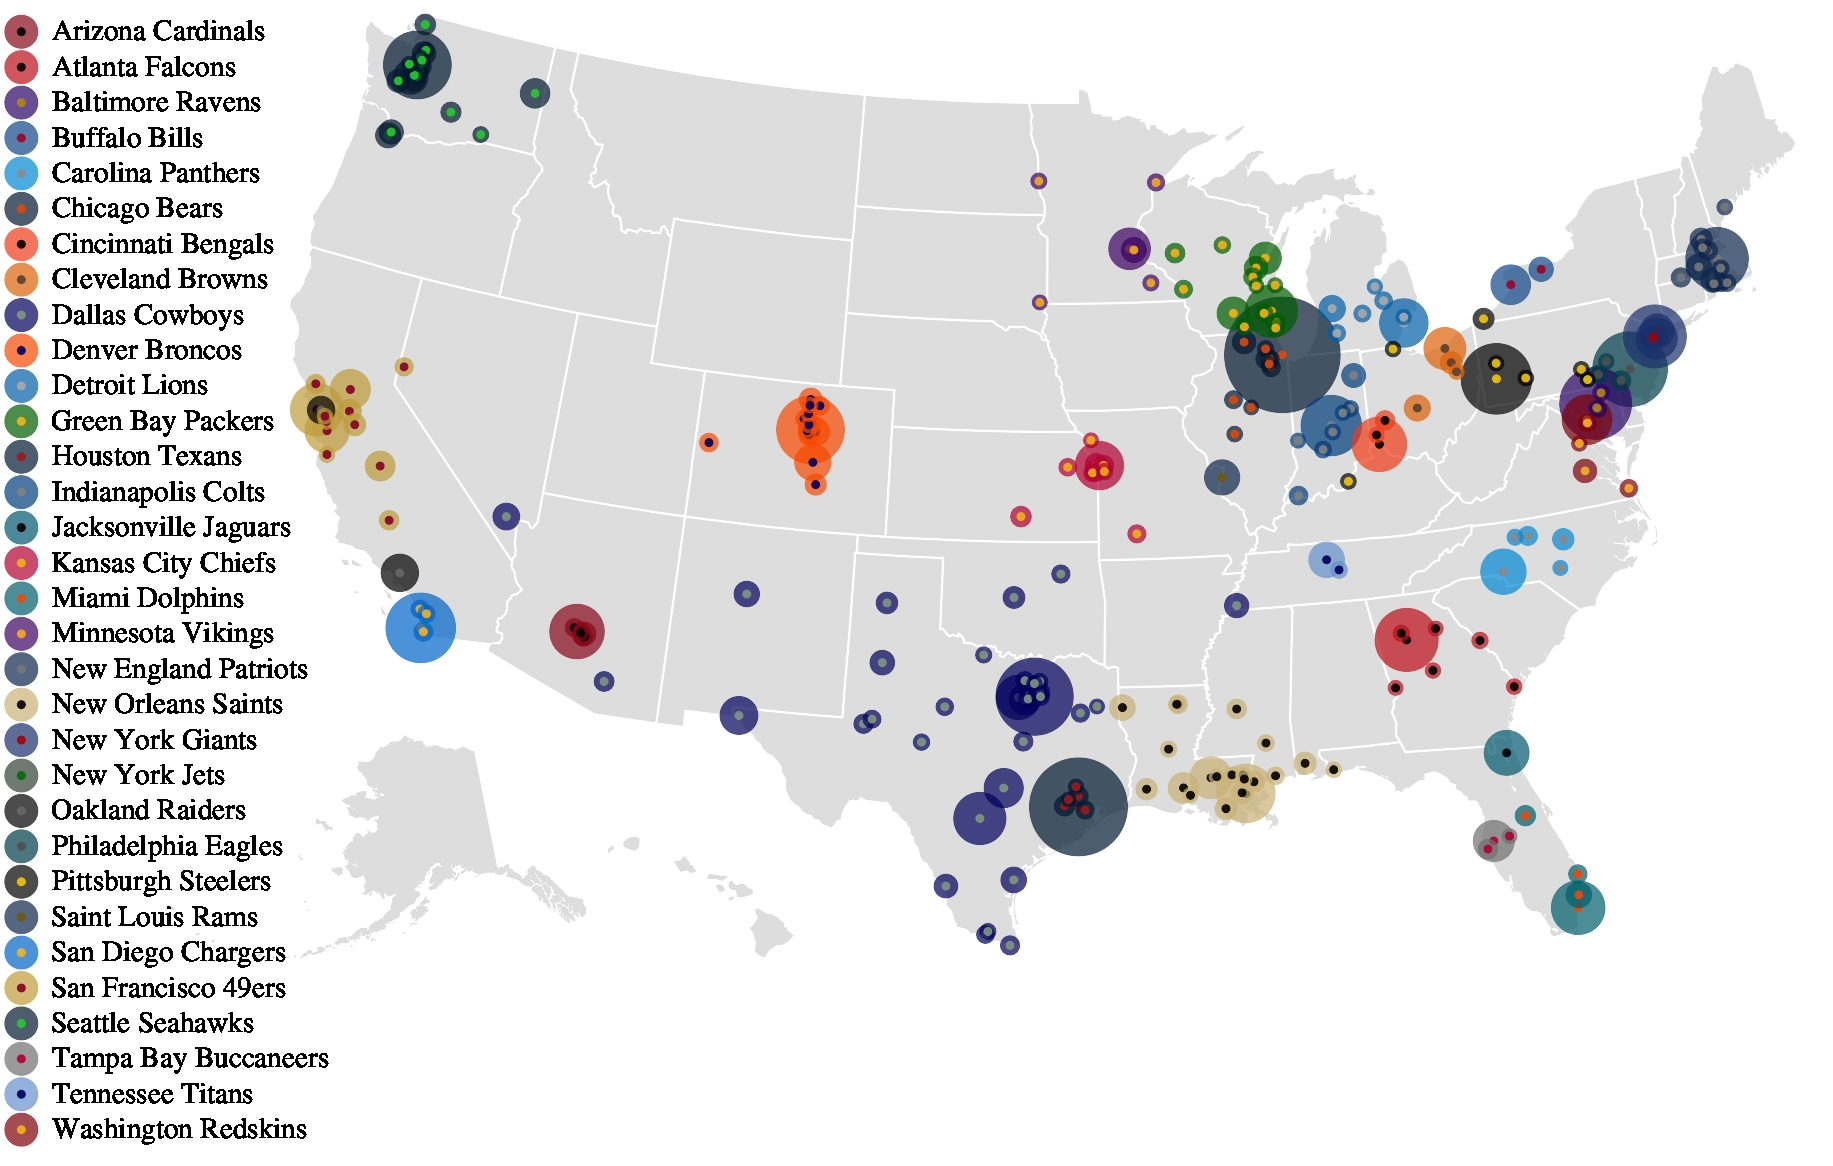 Nfl Fan Friendships On Facebook - Facebook Research throughout Map Of Super Bowl Fans 2019